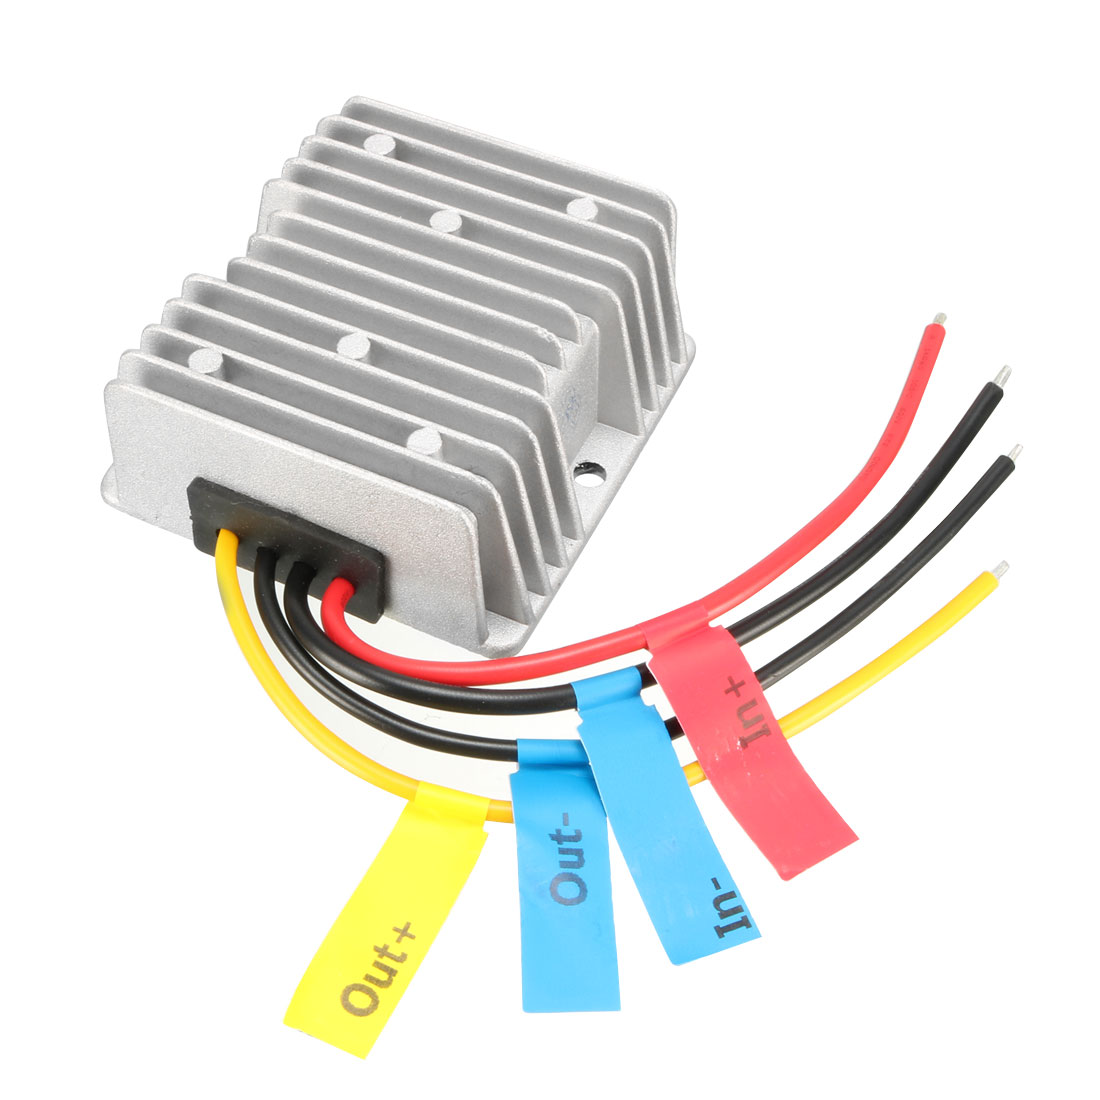 uxcell Power Converter Regulator DC12V(10V~16V) Step-Up to DC48V 3A 144W Waterproof Voltage Convert Transformer